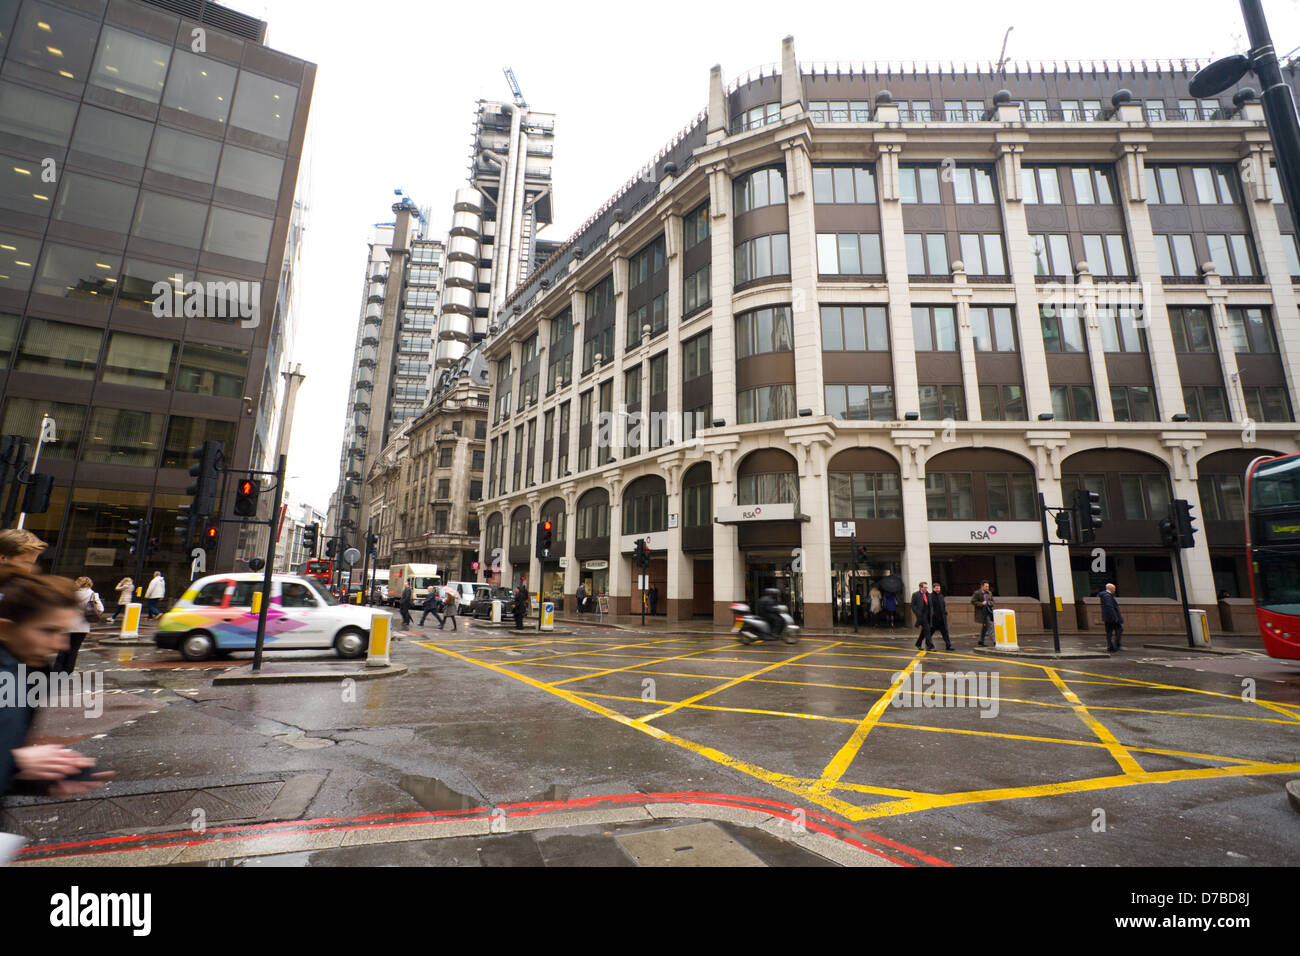 RSA building and junction of gracechurch street, cornhill and leadenhall street, London - Stock Image